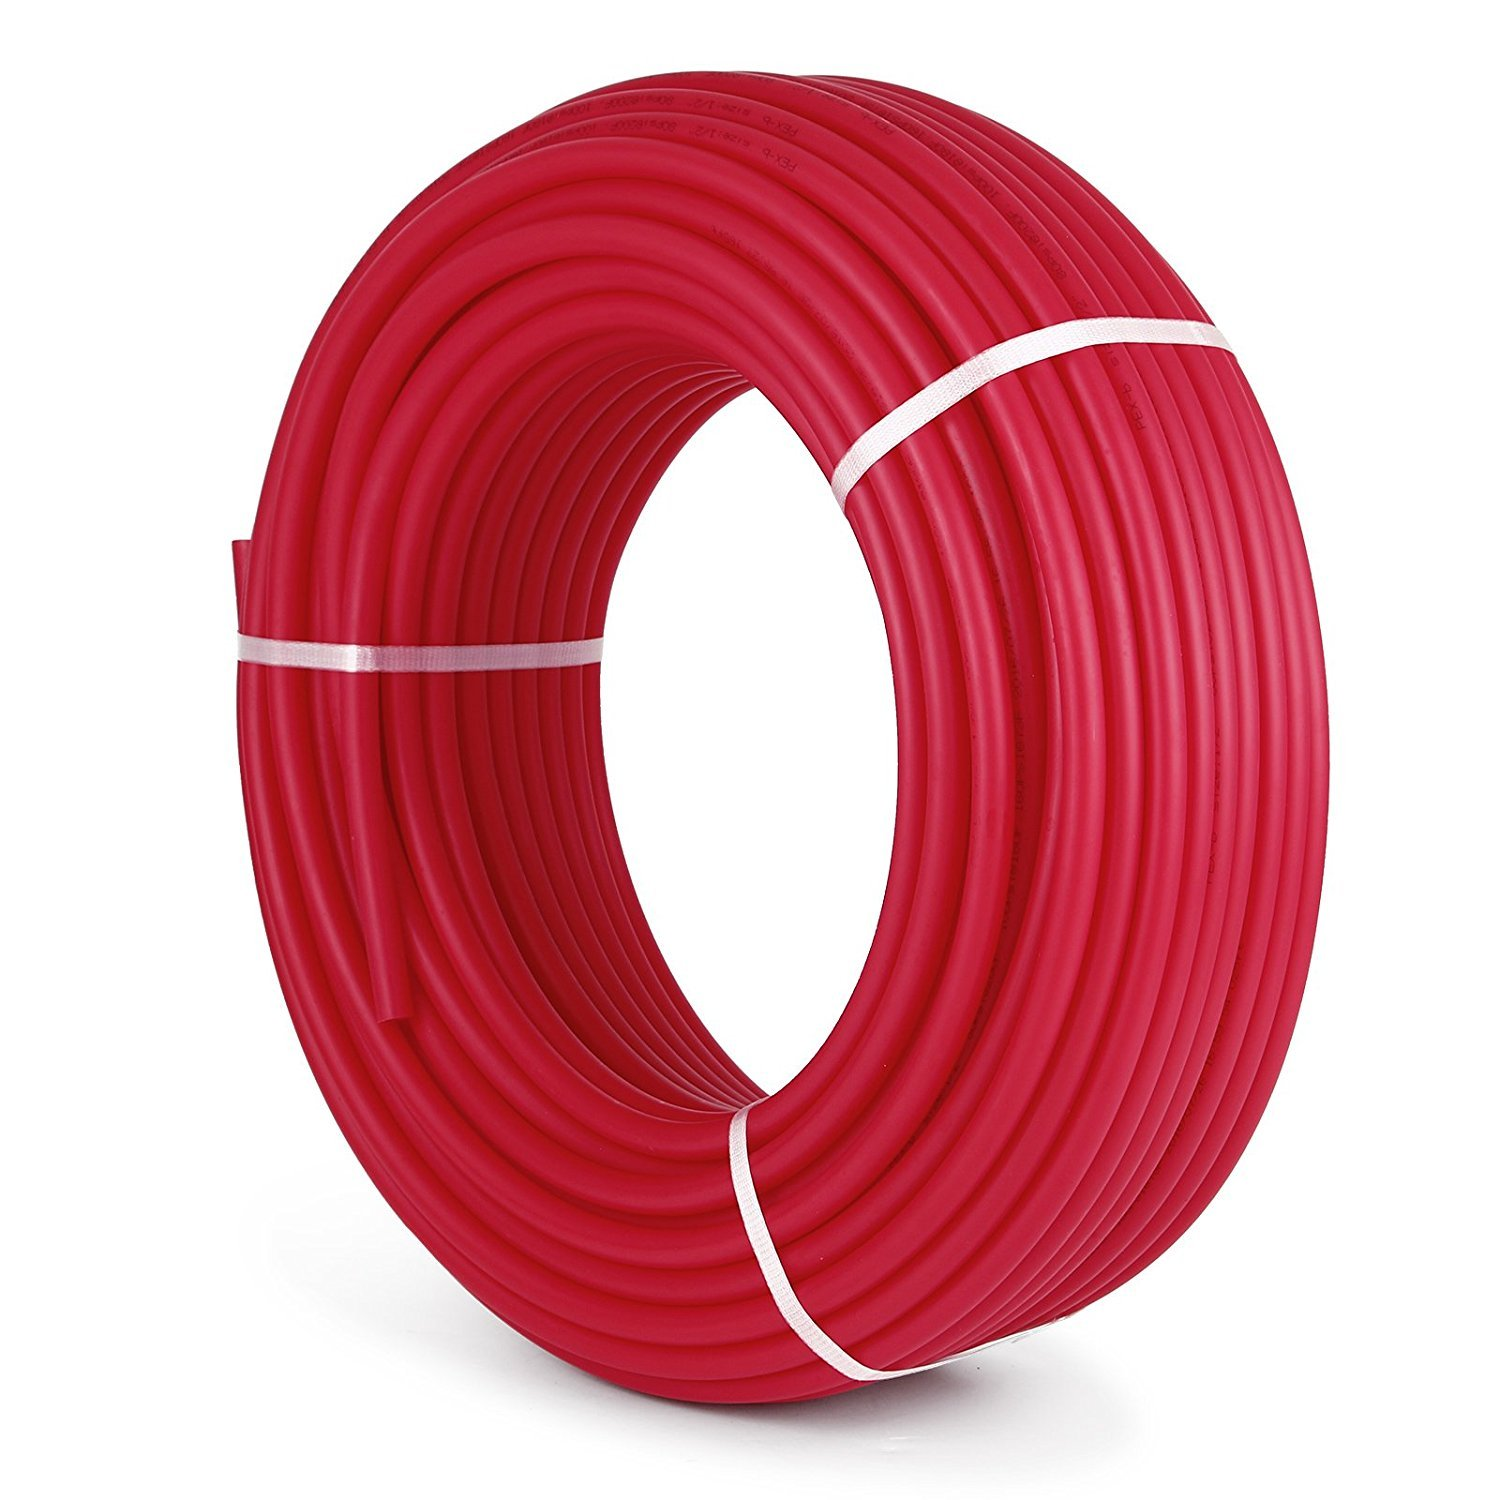 Libra Supply 3/4 inch x 300 ft PEX-B Tubing Non Barrier Potable Water Tube(Click in for more size & length options) for Hot & Cold Potable Water & Radiant Floor Heating Application - Red, 3/4''